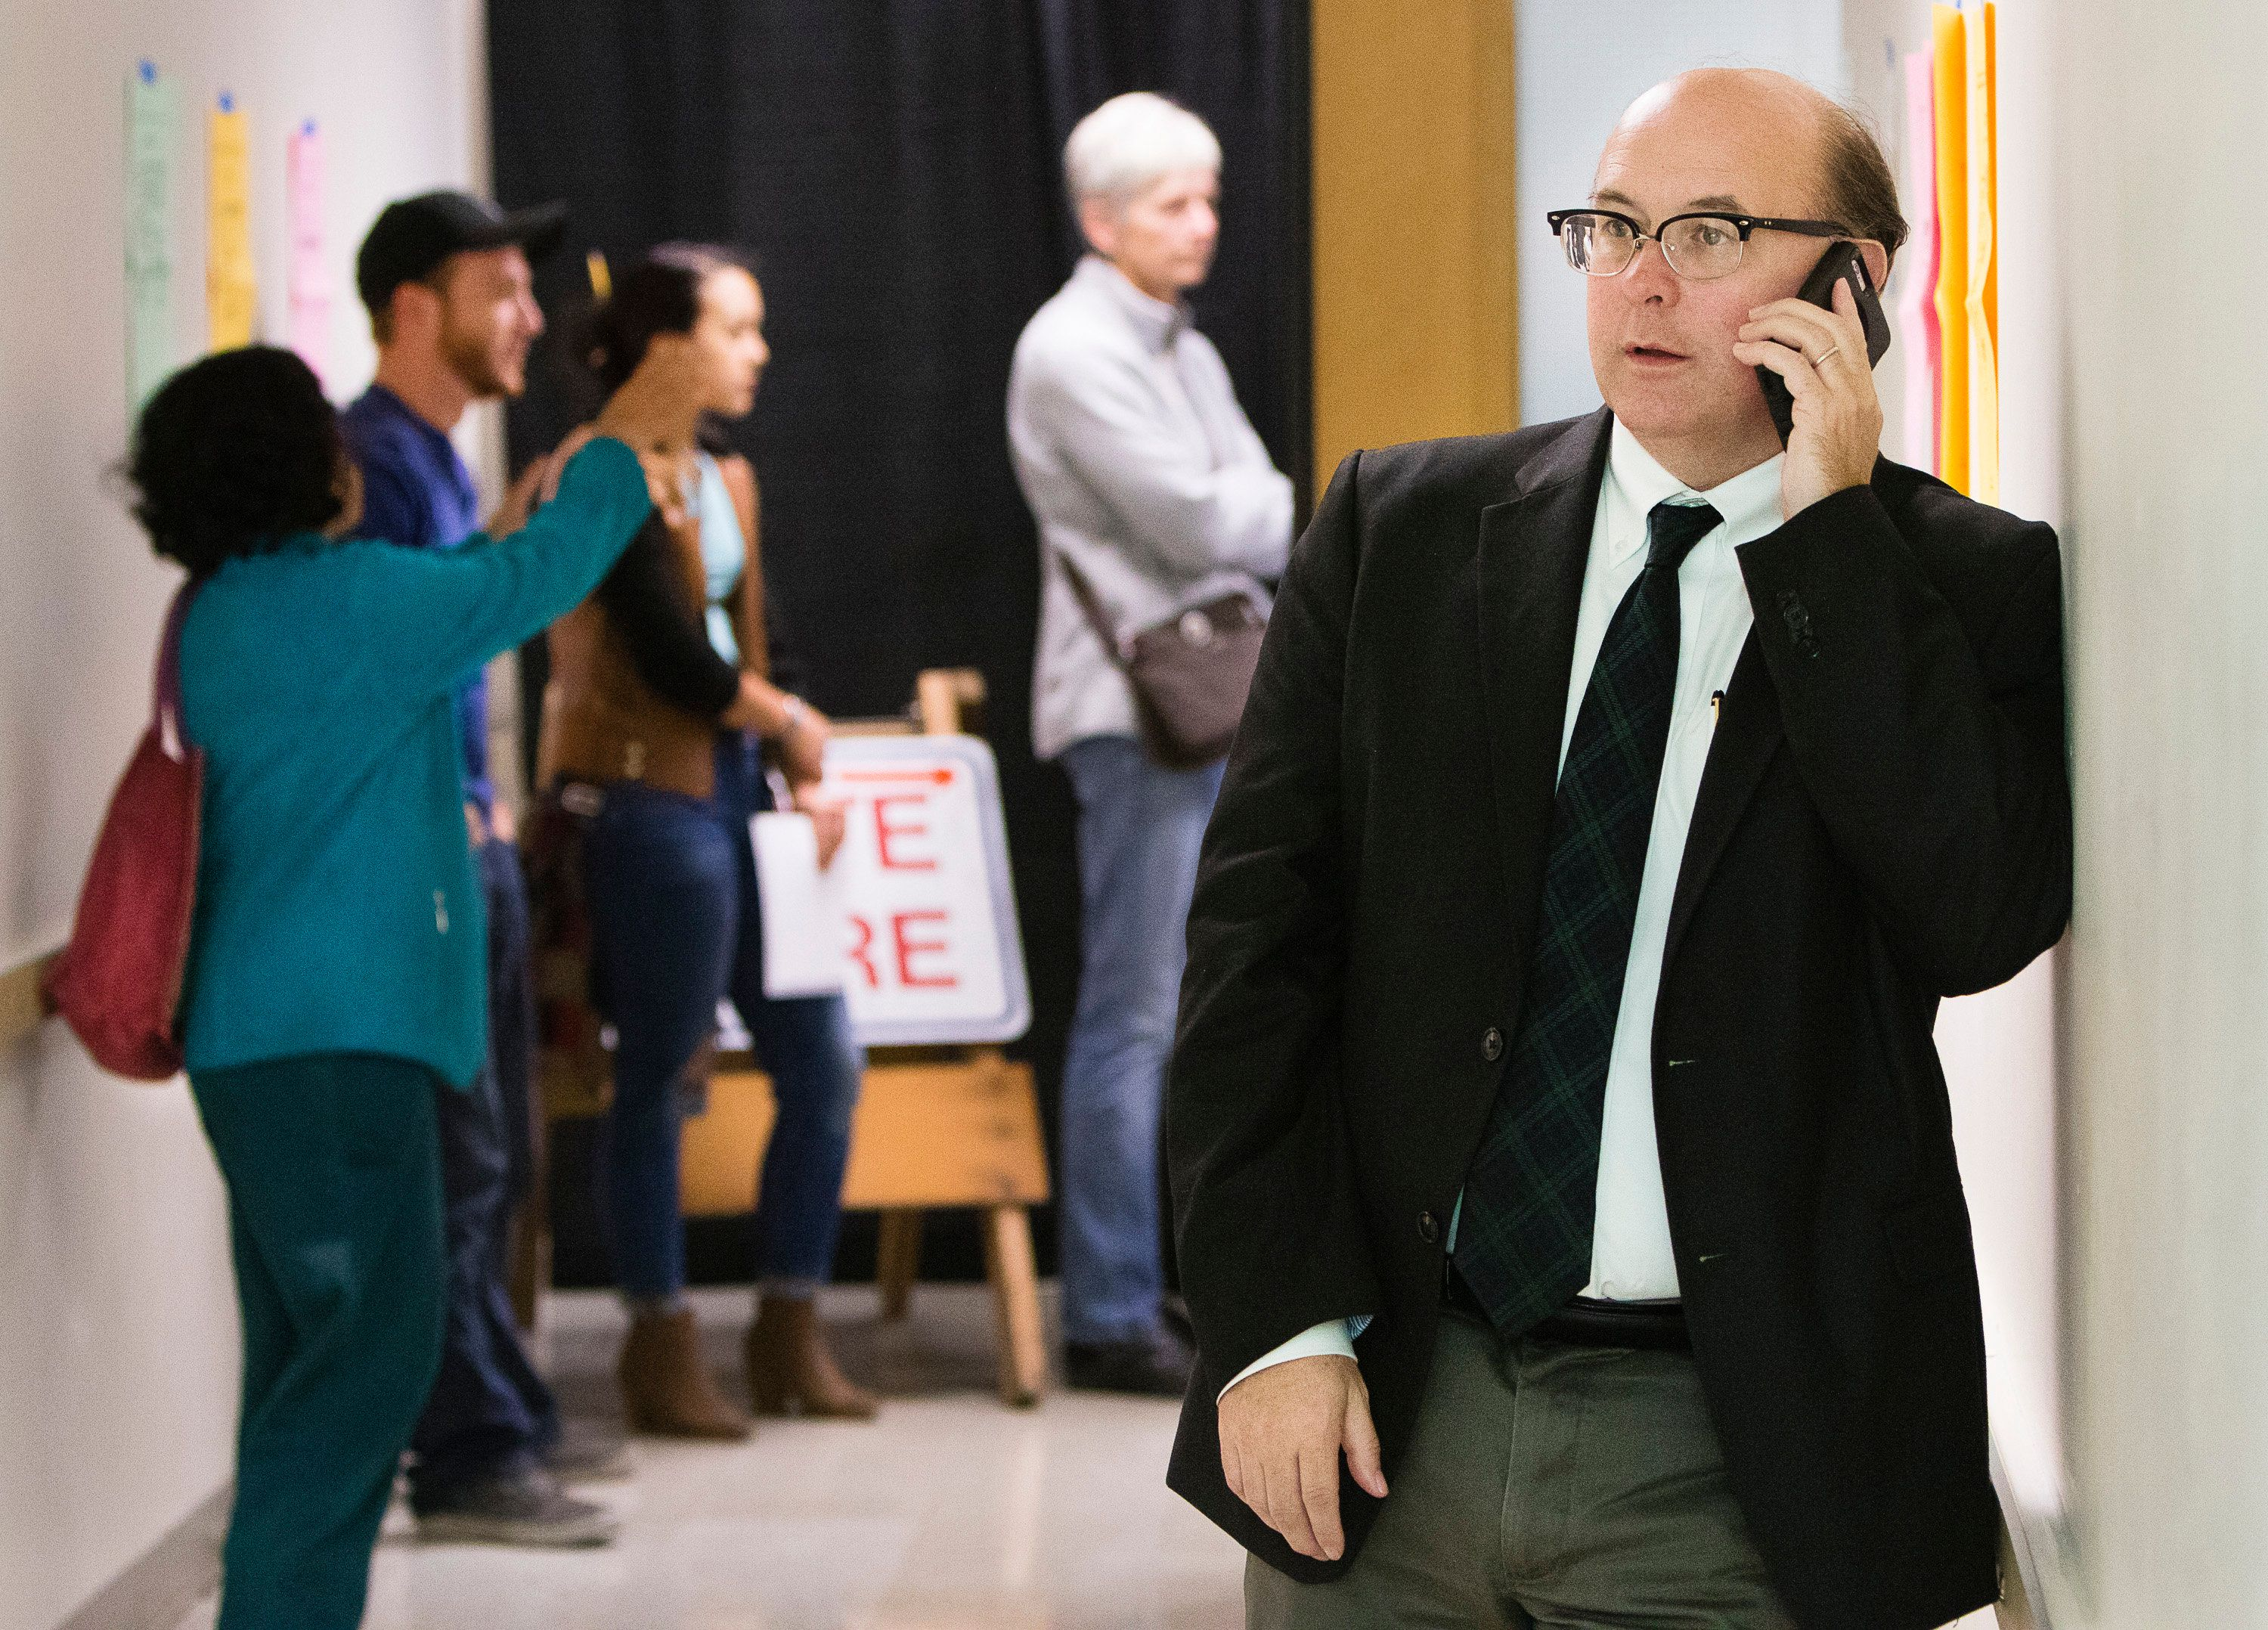 PORTLAND, ME - NOVEMBER 8: Maine Secretary of State Matthew Dunlap fields a phone call during one of several election day stops, to see how the polling process is going, at the Merrill Auditorioun Rehearsal Hall voting location in Portland on Tuesday, November 8, 2016. (Photo by Carl D. Walsh/Portland Press Herald via Getty Images)